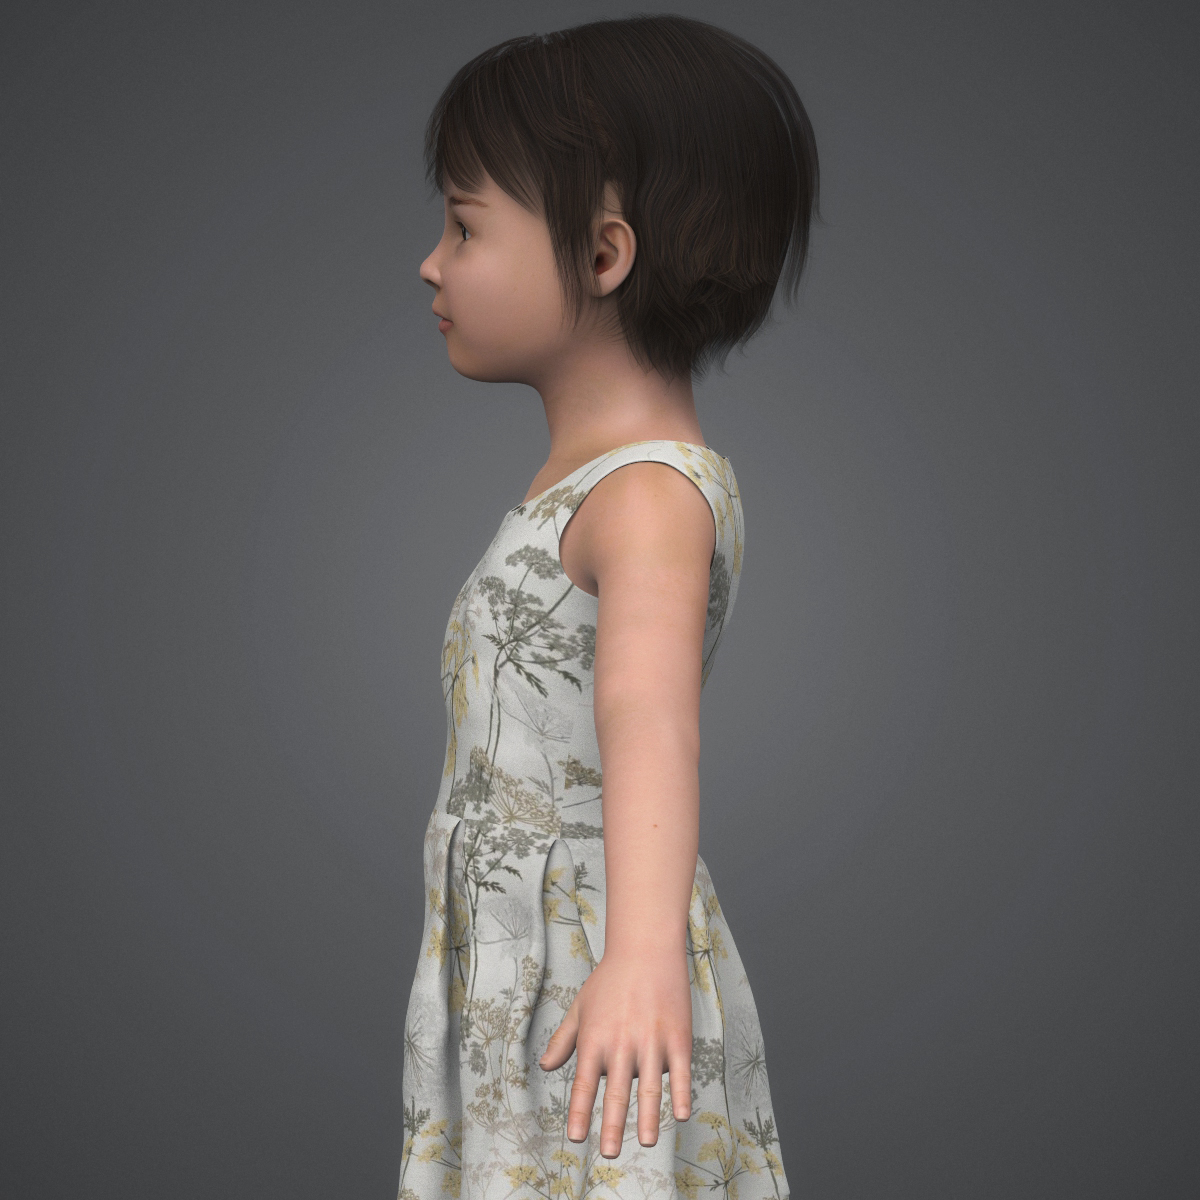 beautiful child girl 3d model max fbx c4d ma mb texture obj 252392